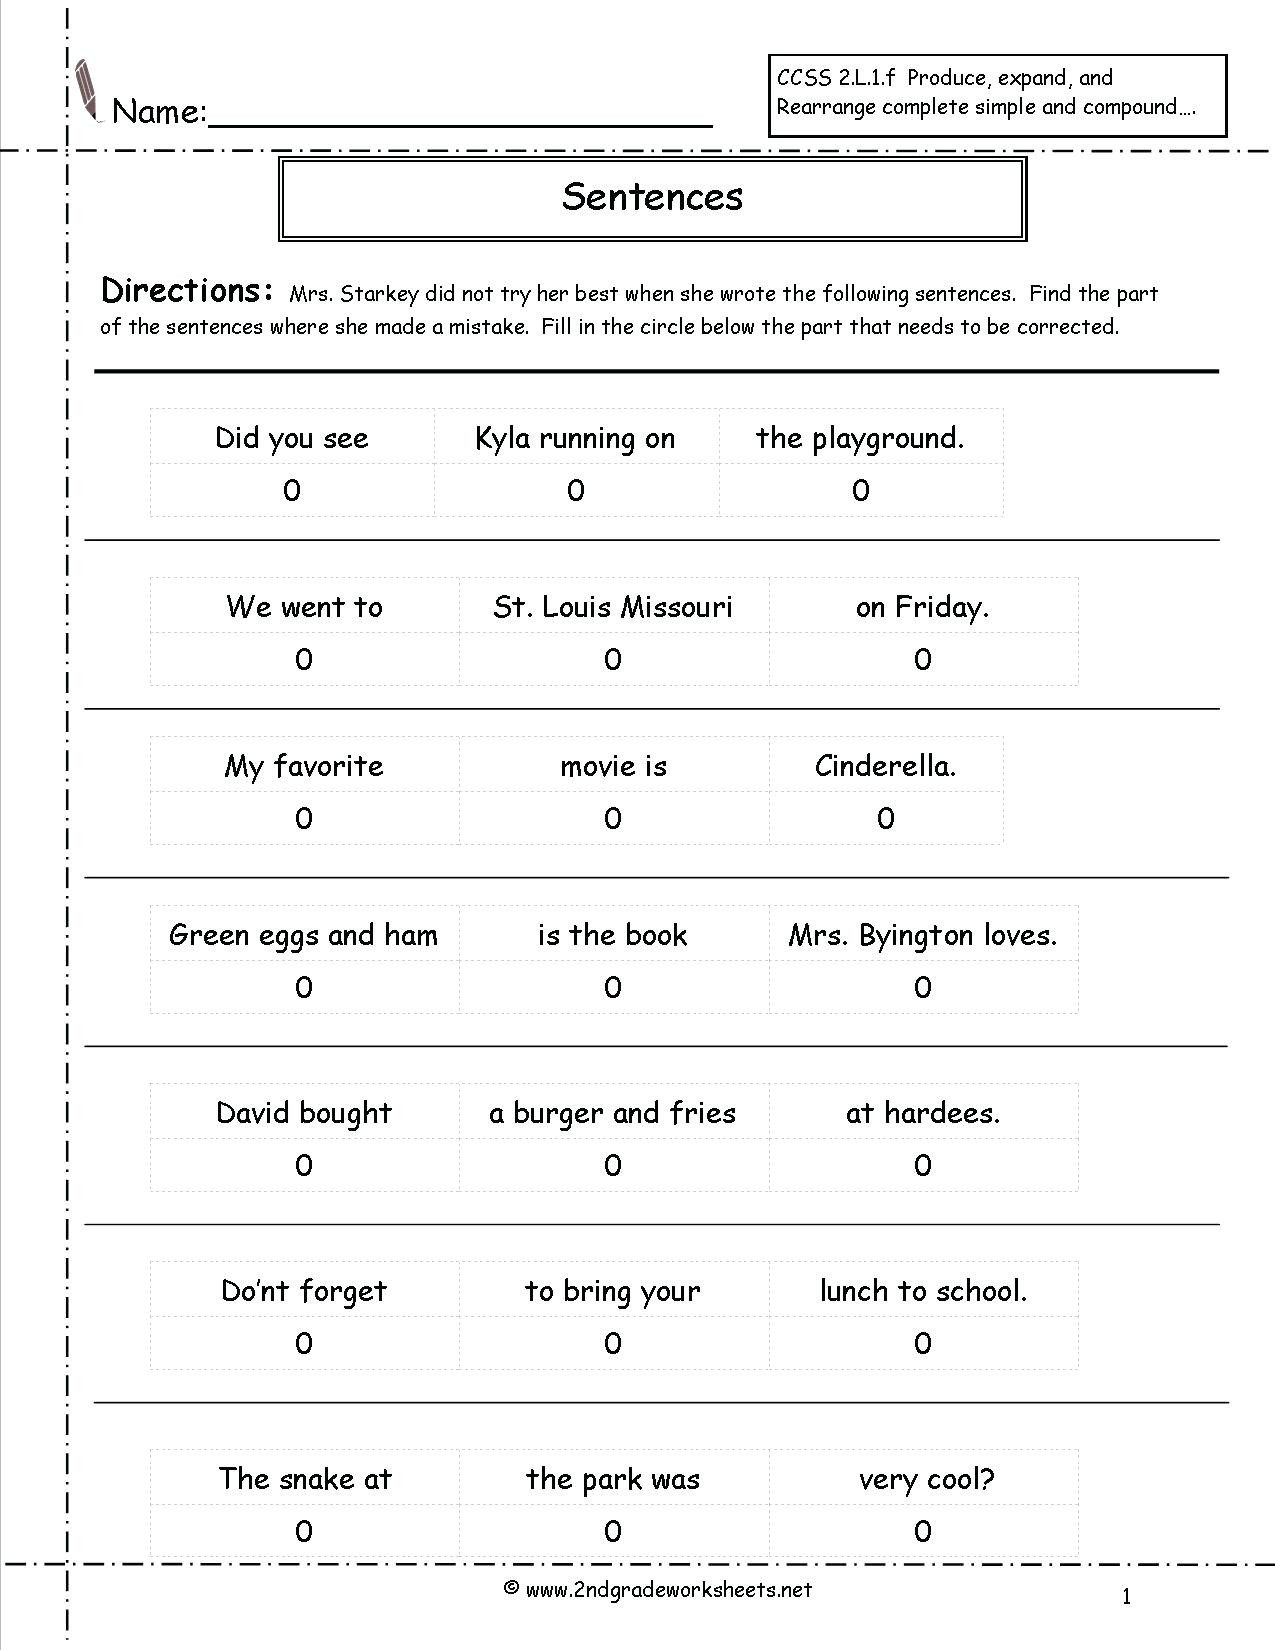 Number Sentence Worksheets 2nd Grade Types Sentences Worksheets to Download Types Of